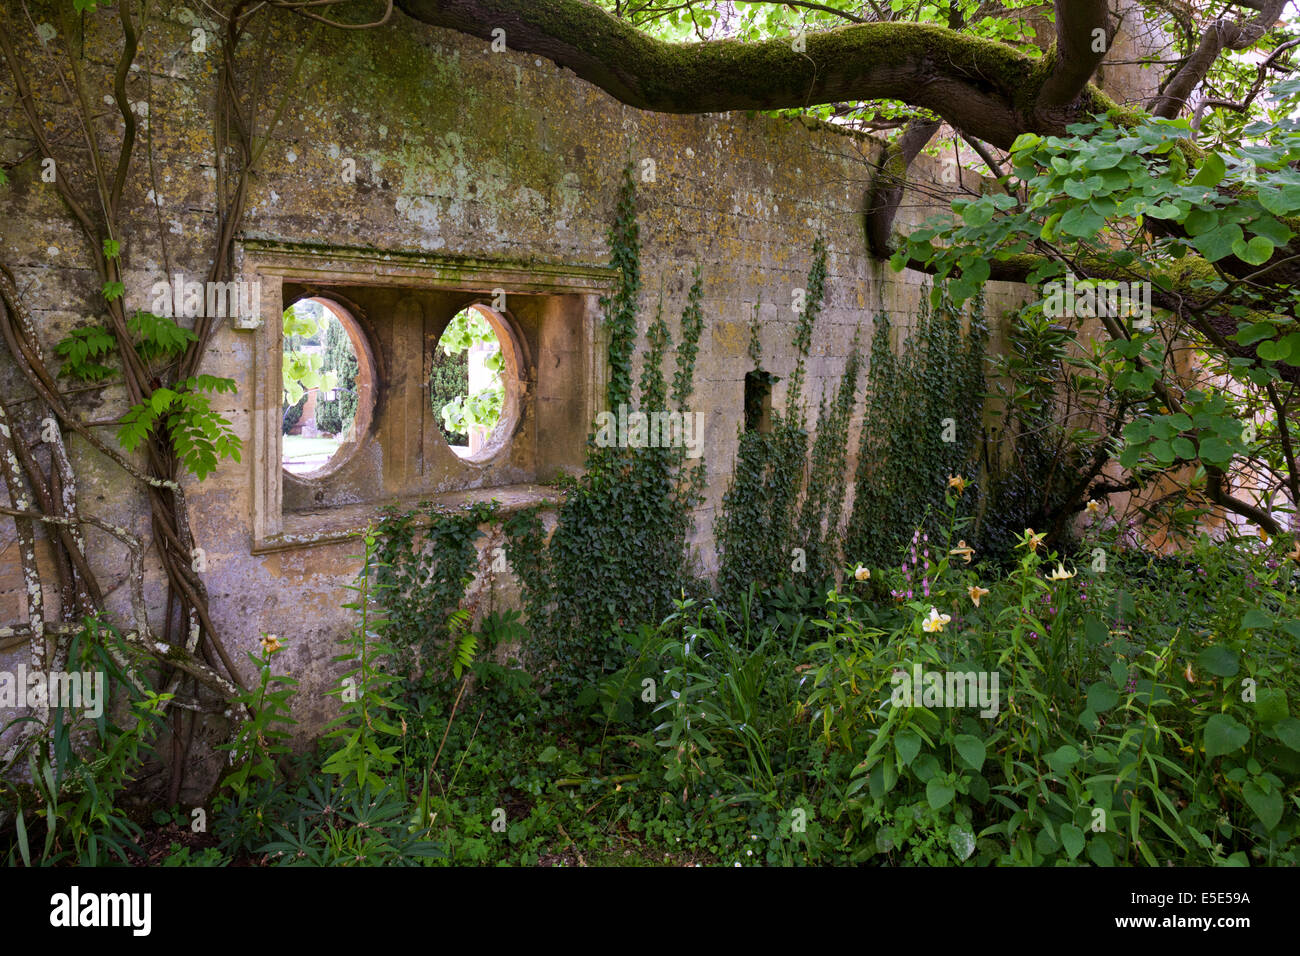 One of the three pairs of oval, spectacle-like windows in the garden wall of Stanway House, Stanway, Gloucestershire - Stock Image